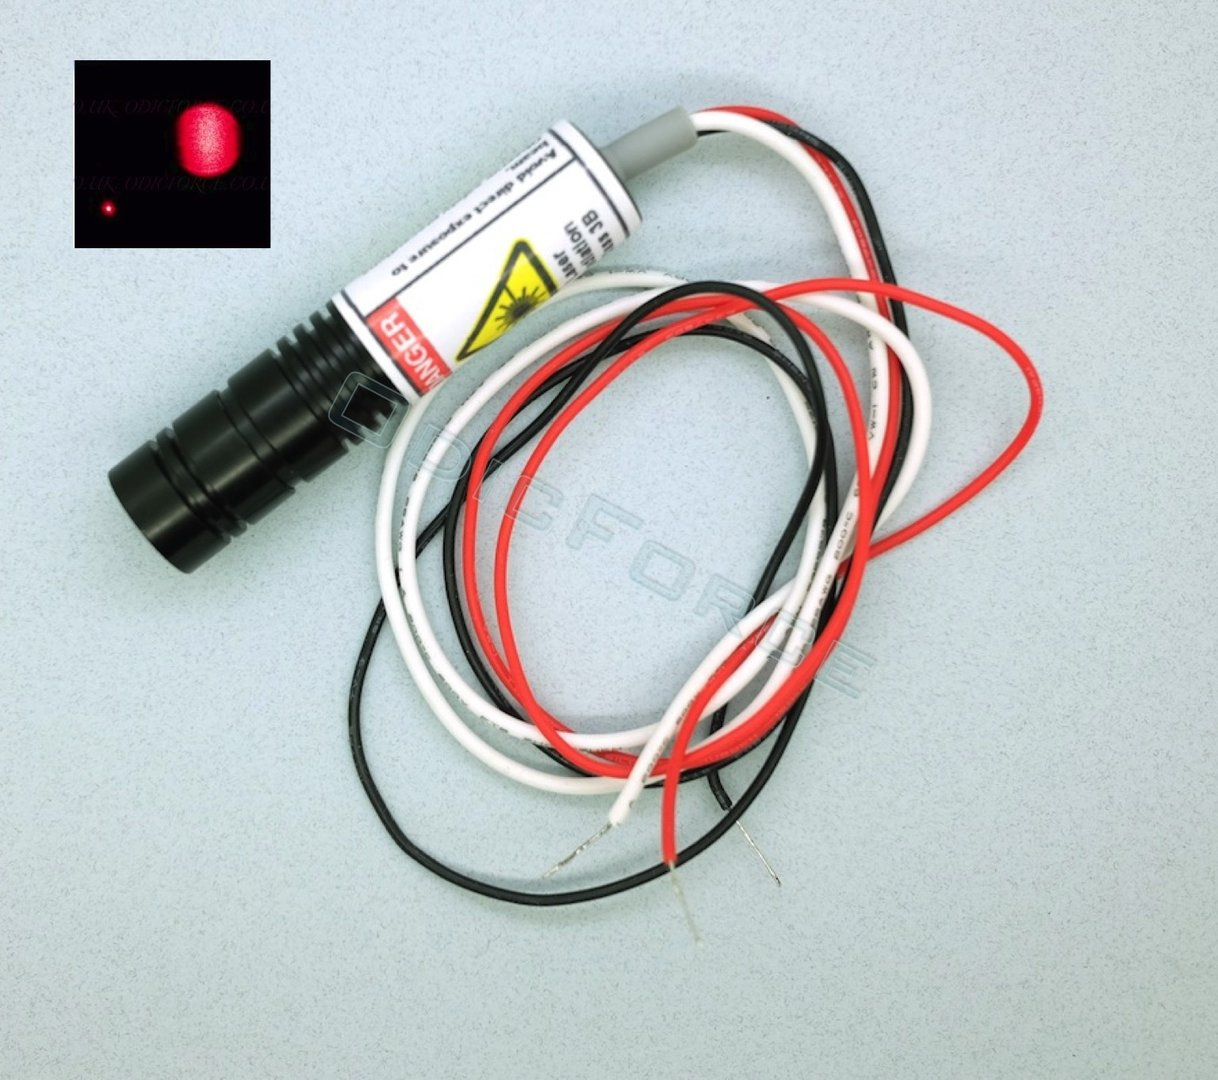 200mW Red (650nm) Laser Diode Module with Adjustable Locking Focus  TTL Modulation (16mm)